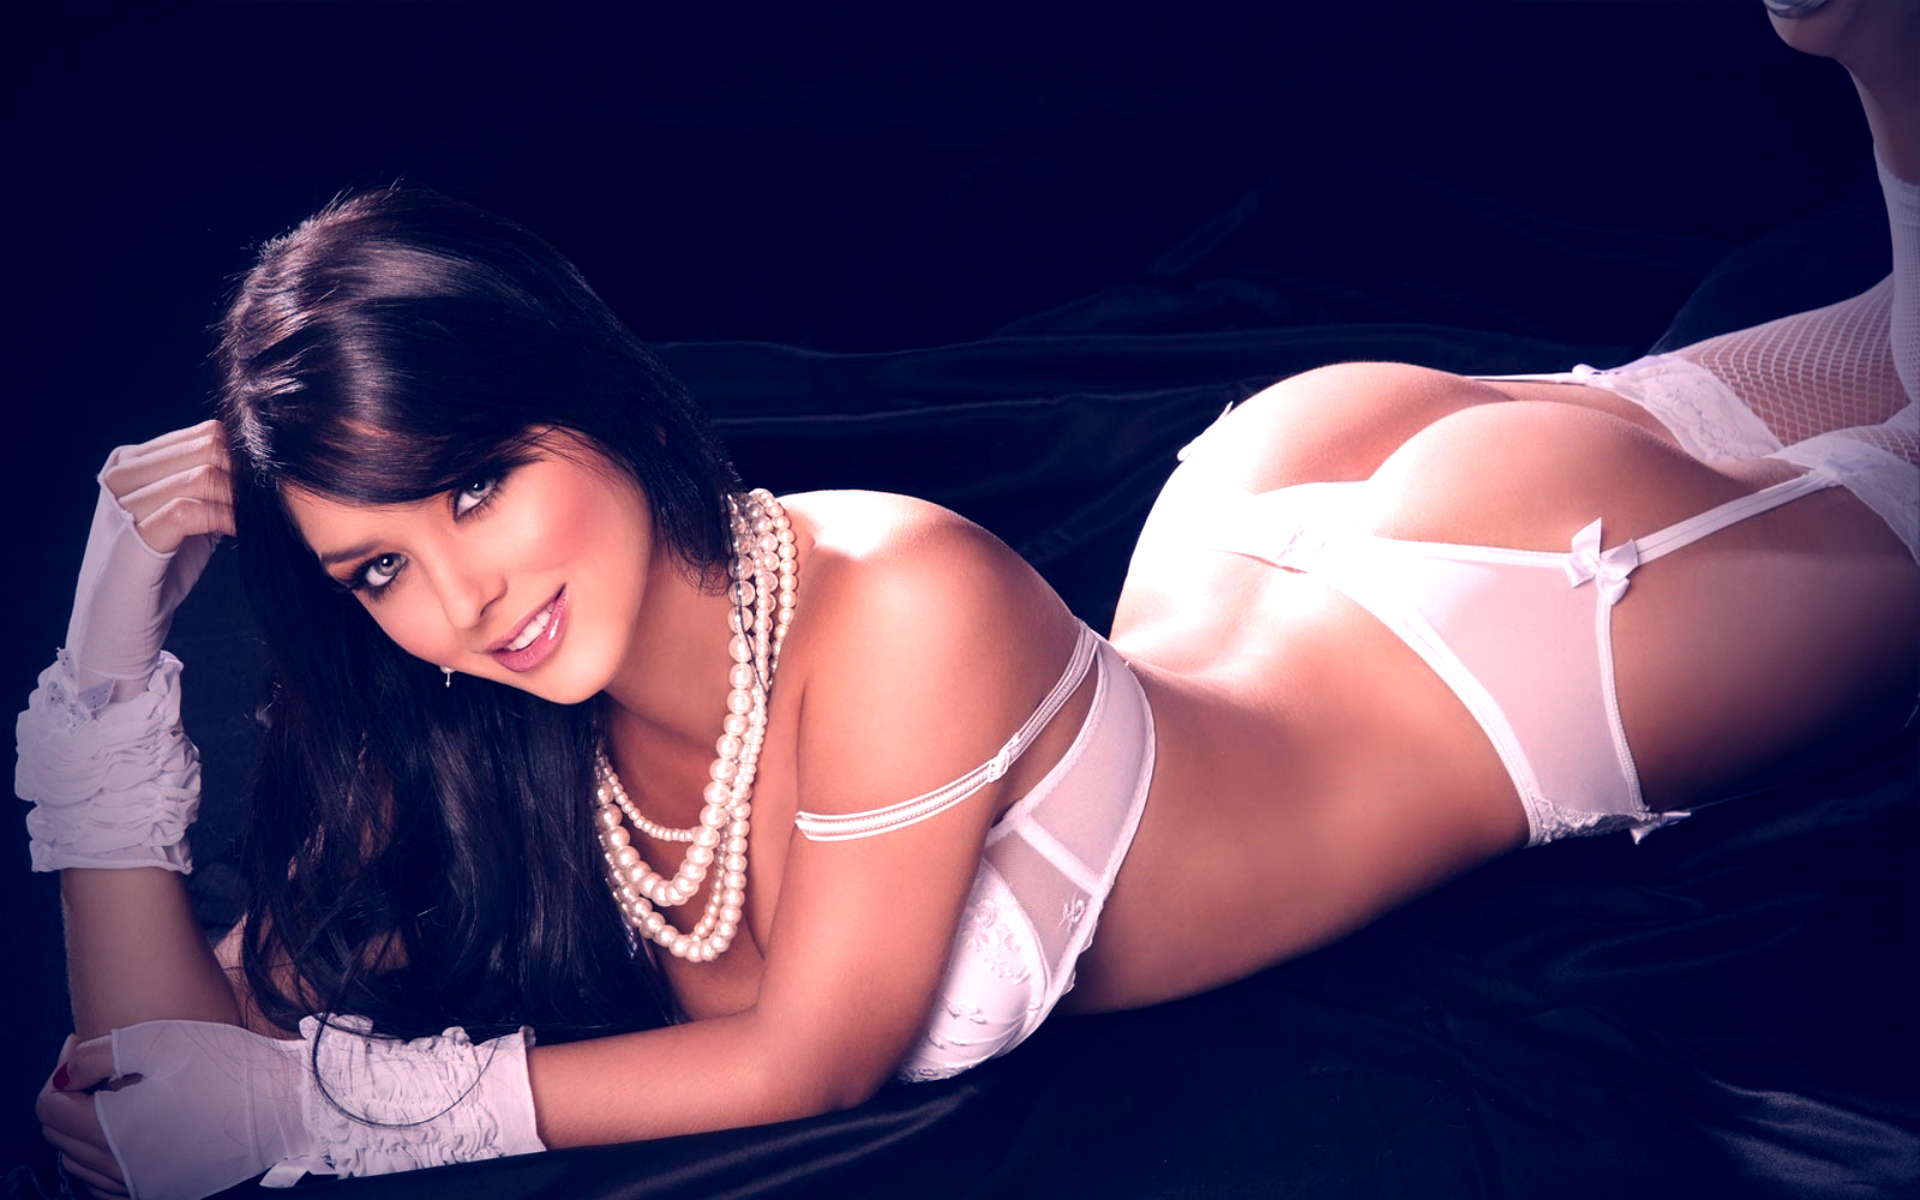 Sultry Spanish female Alexa Tomas is to hot to resist in white bra and panties № 1292216  скачать